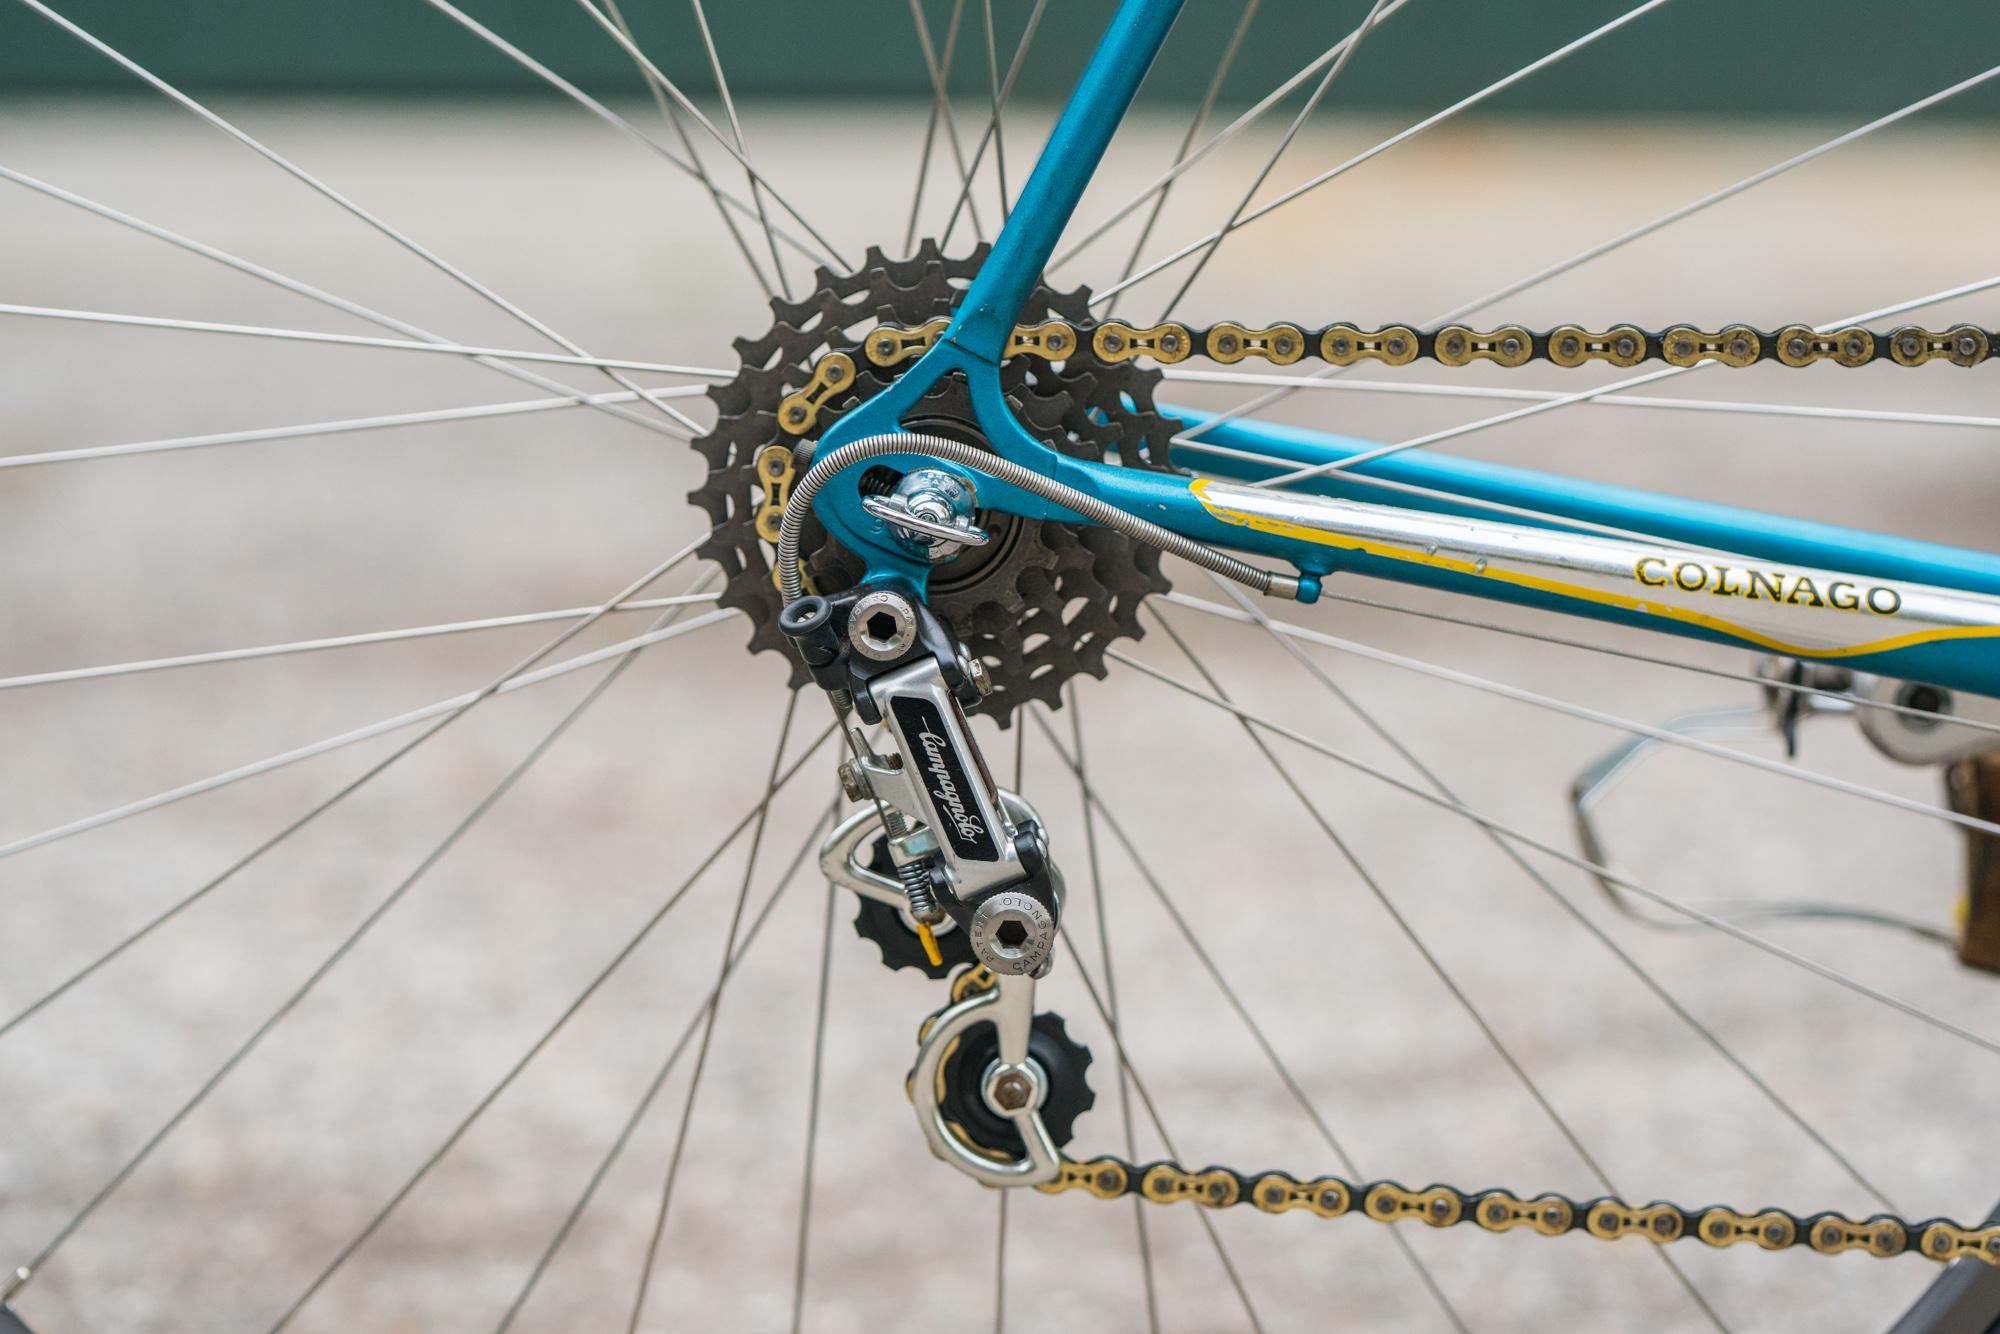 Johns Cool Colnago Coolnago (5 of 27)